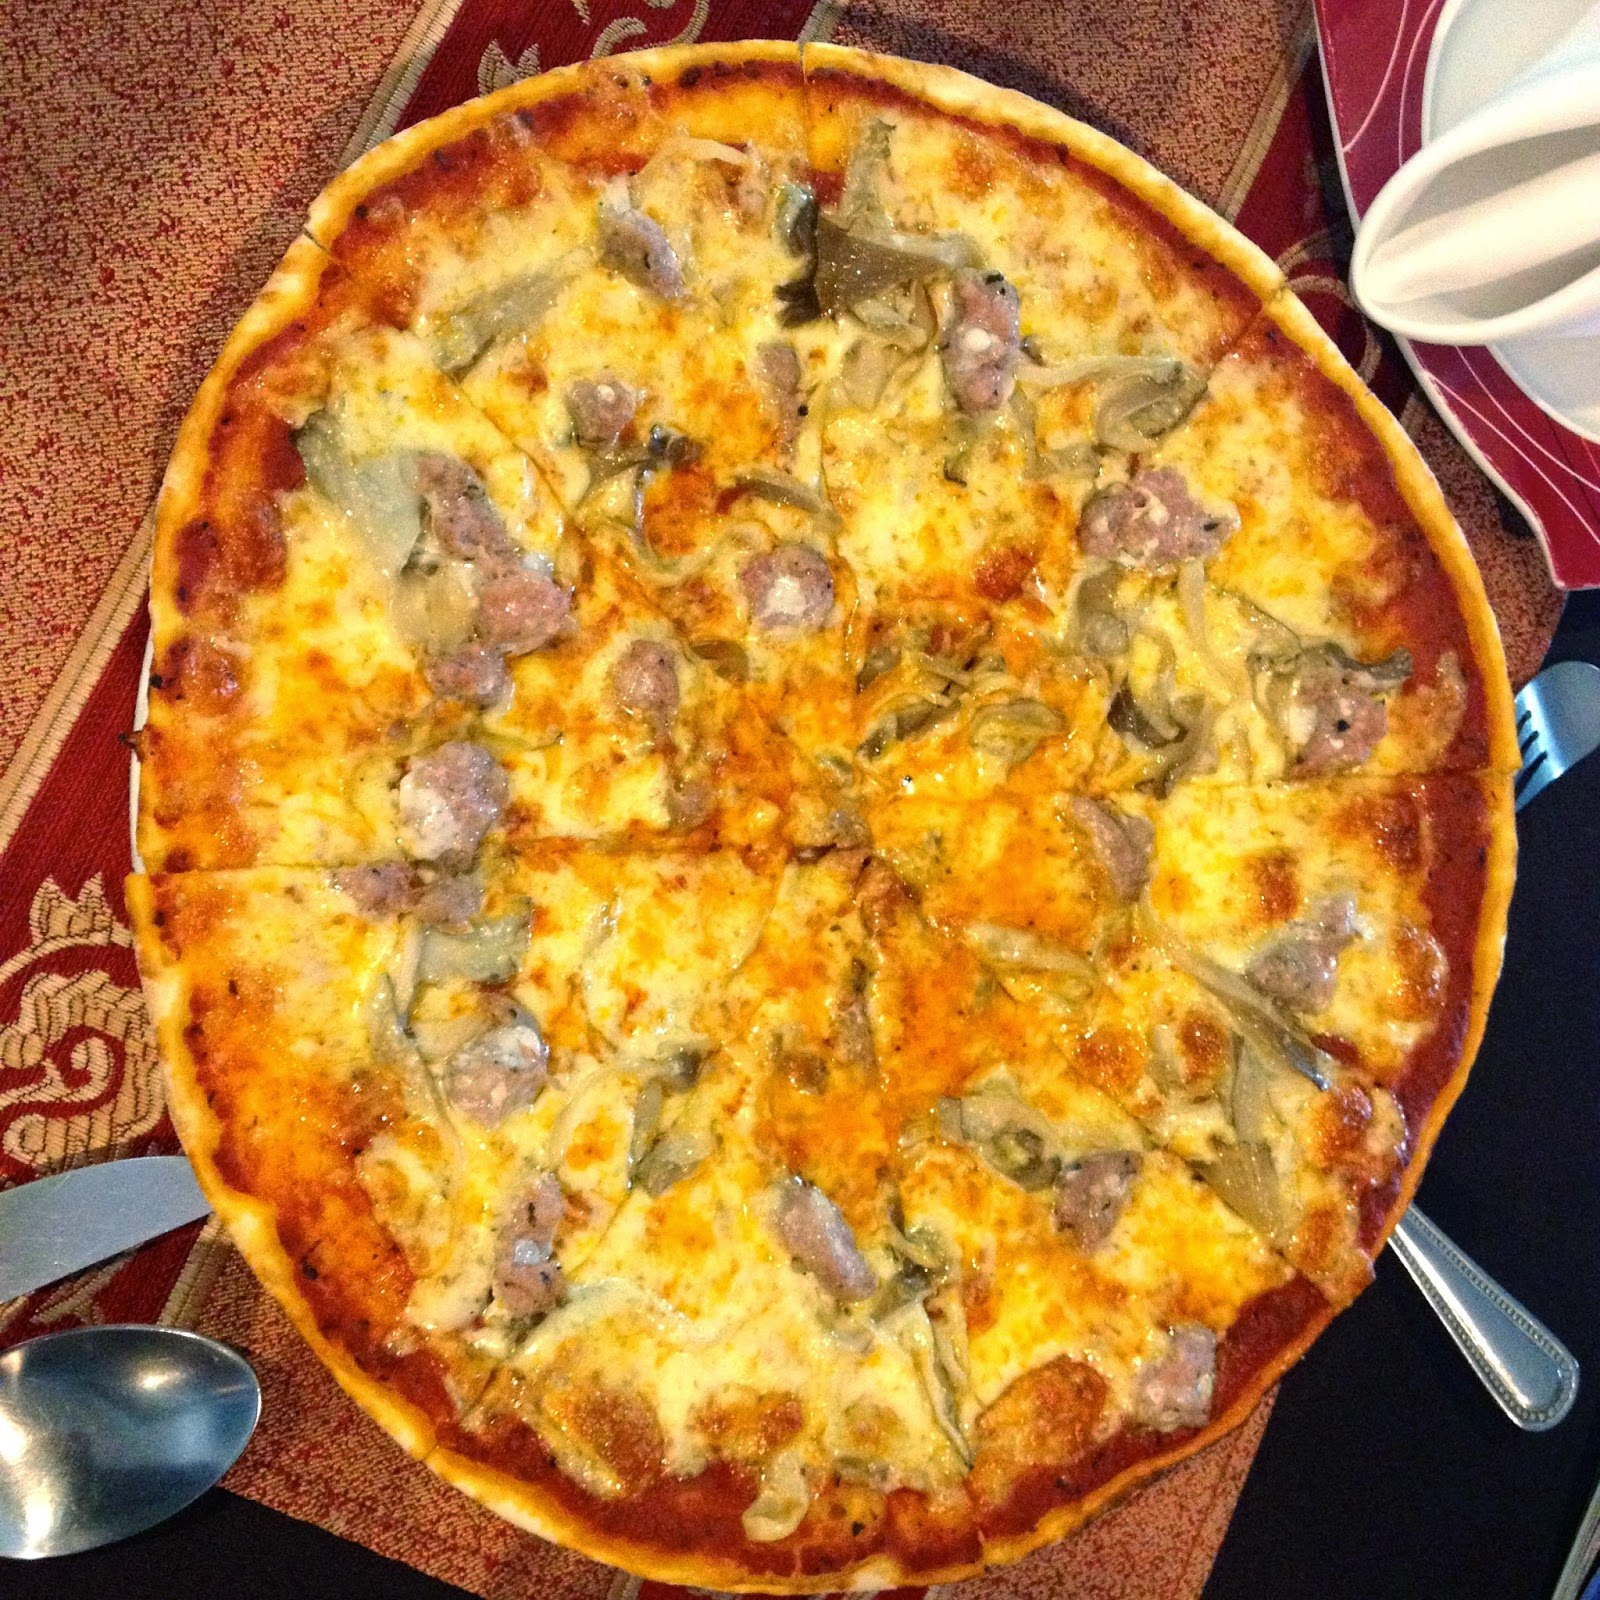 Italian Sausage and Mushroom Pizza #kalamicebu